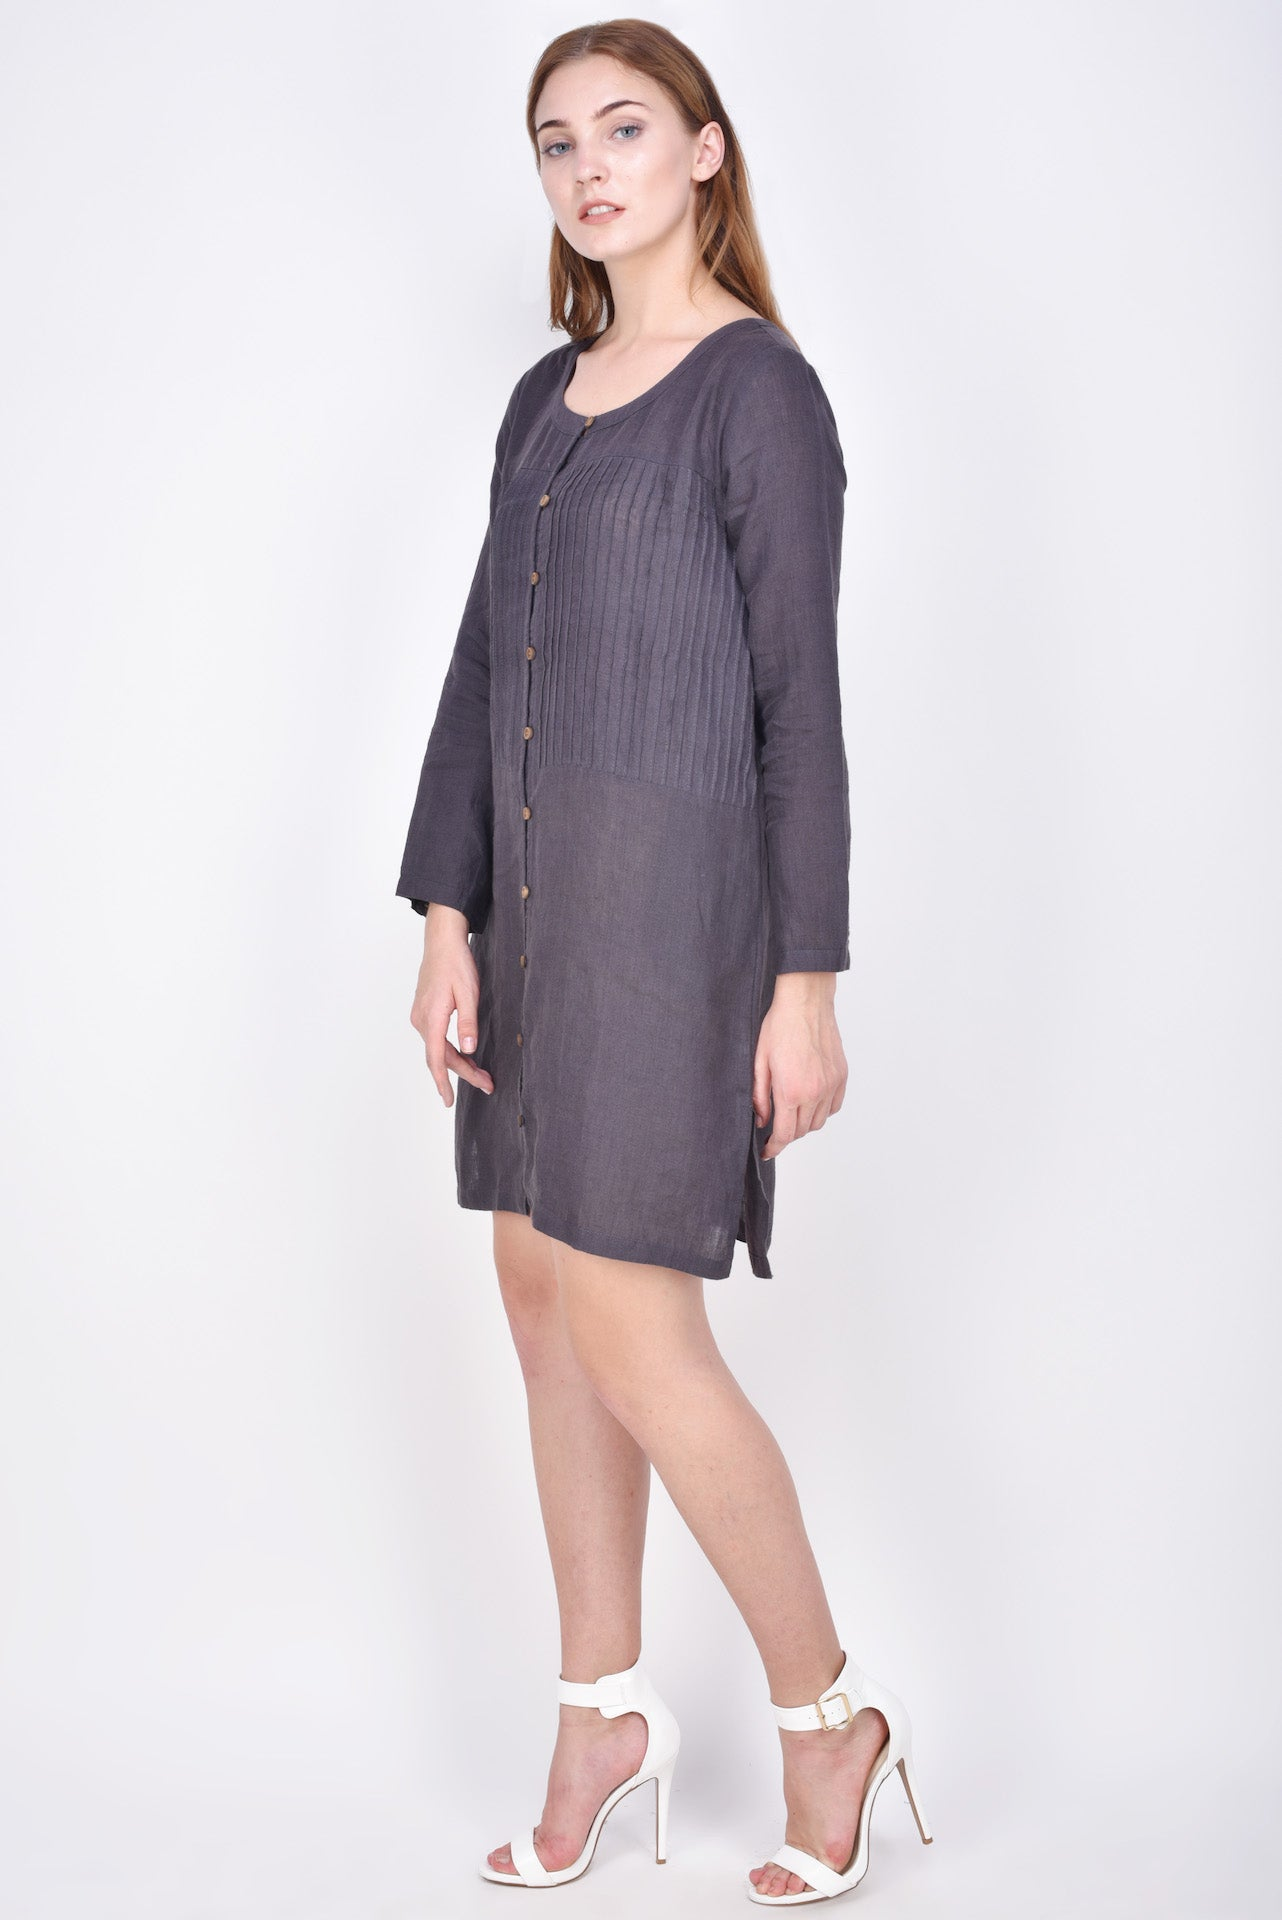 The Barbery Linen Dress